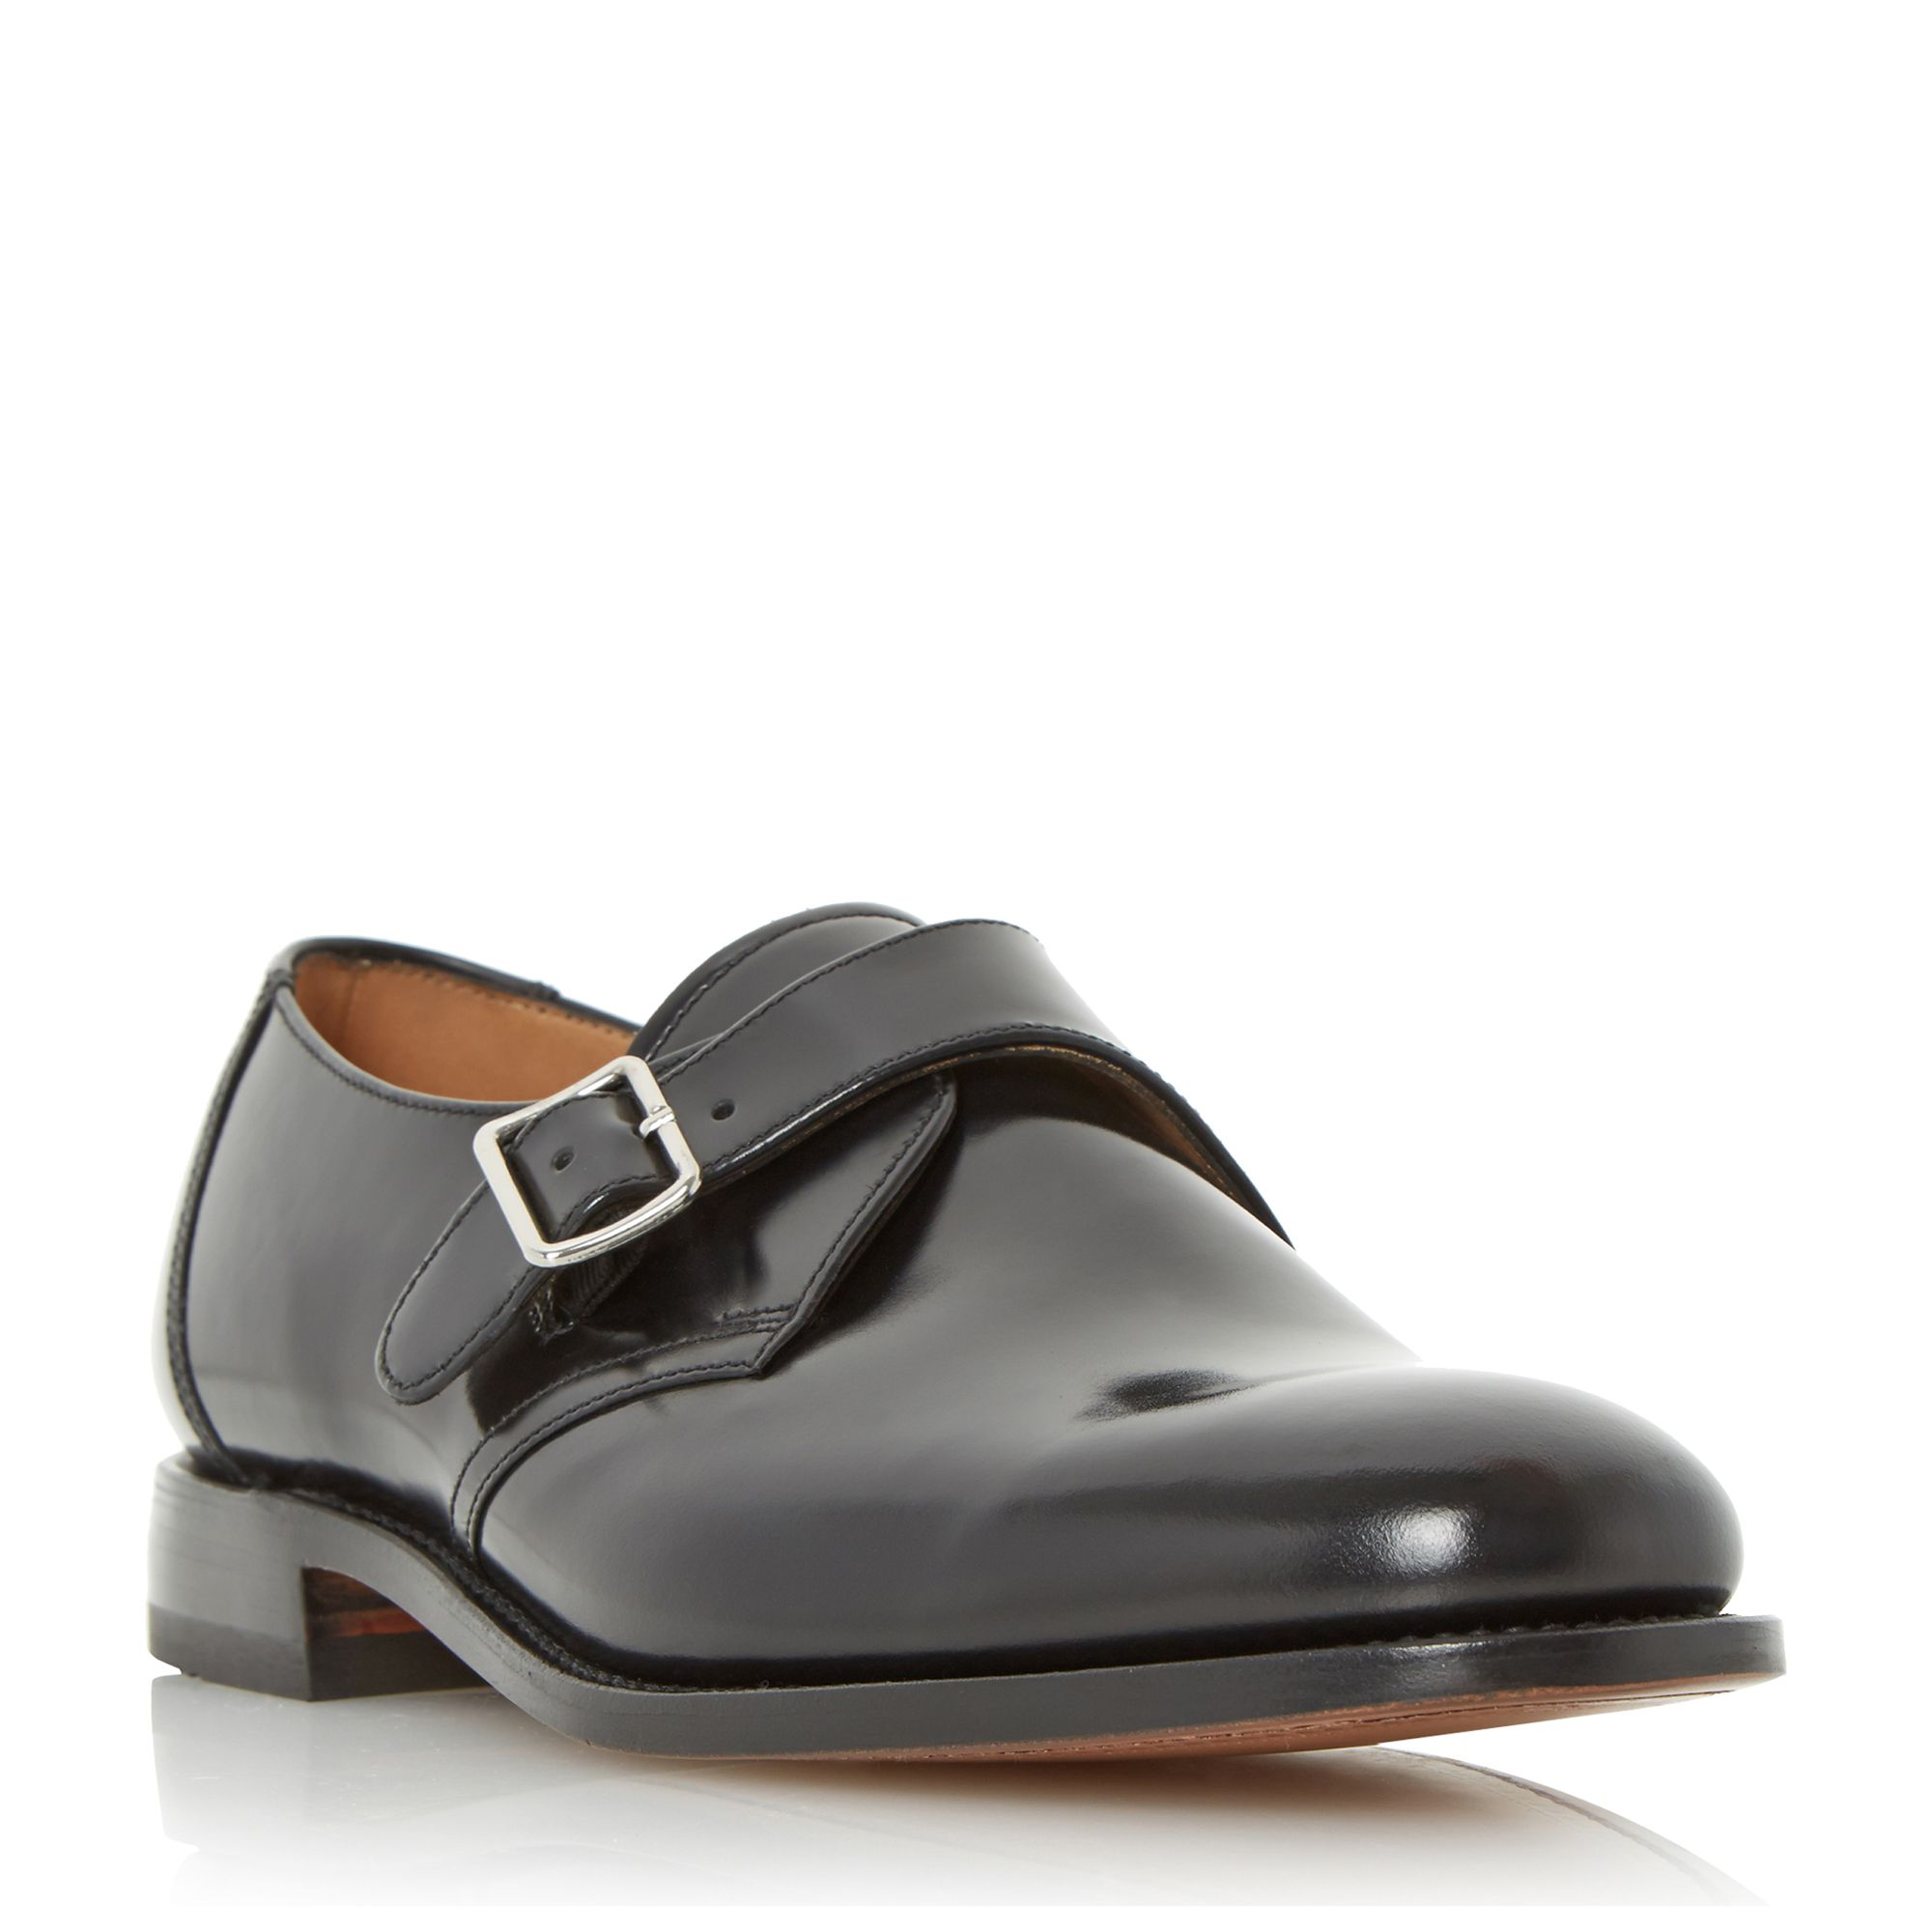 Loake 204b single buckle leather monk shoes ...